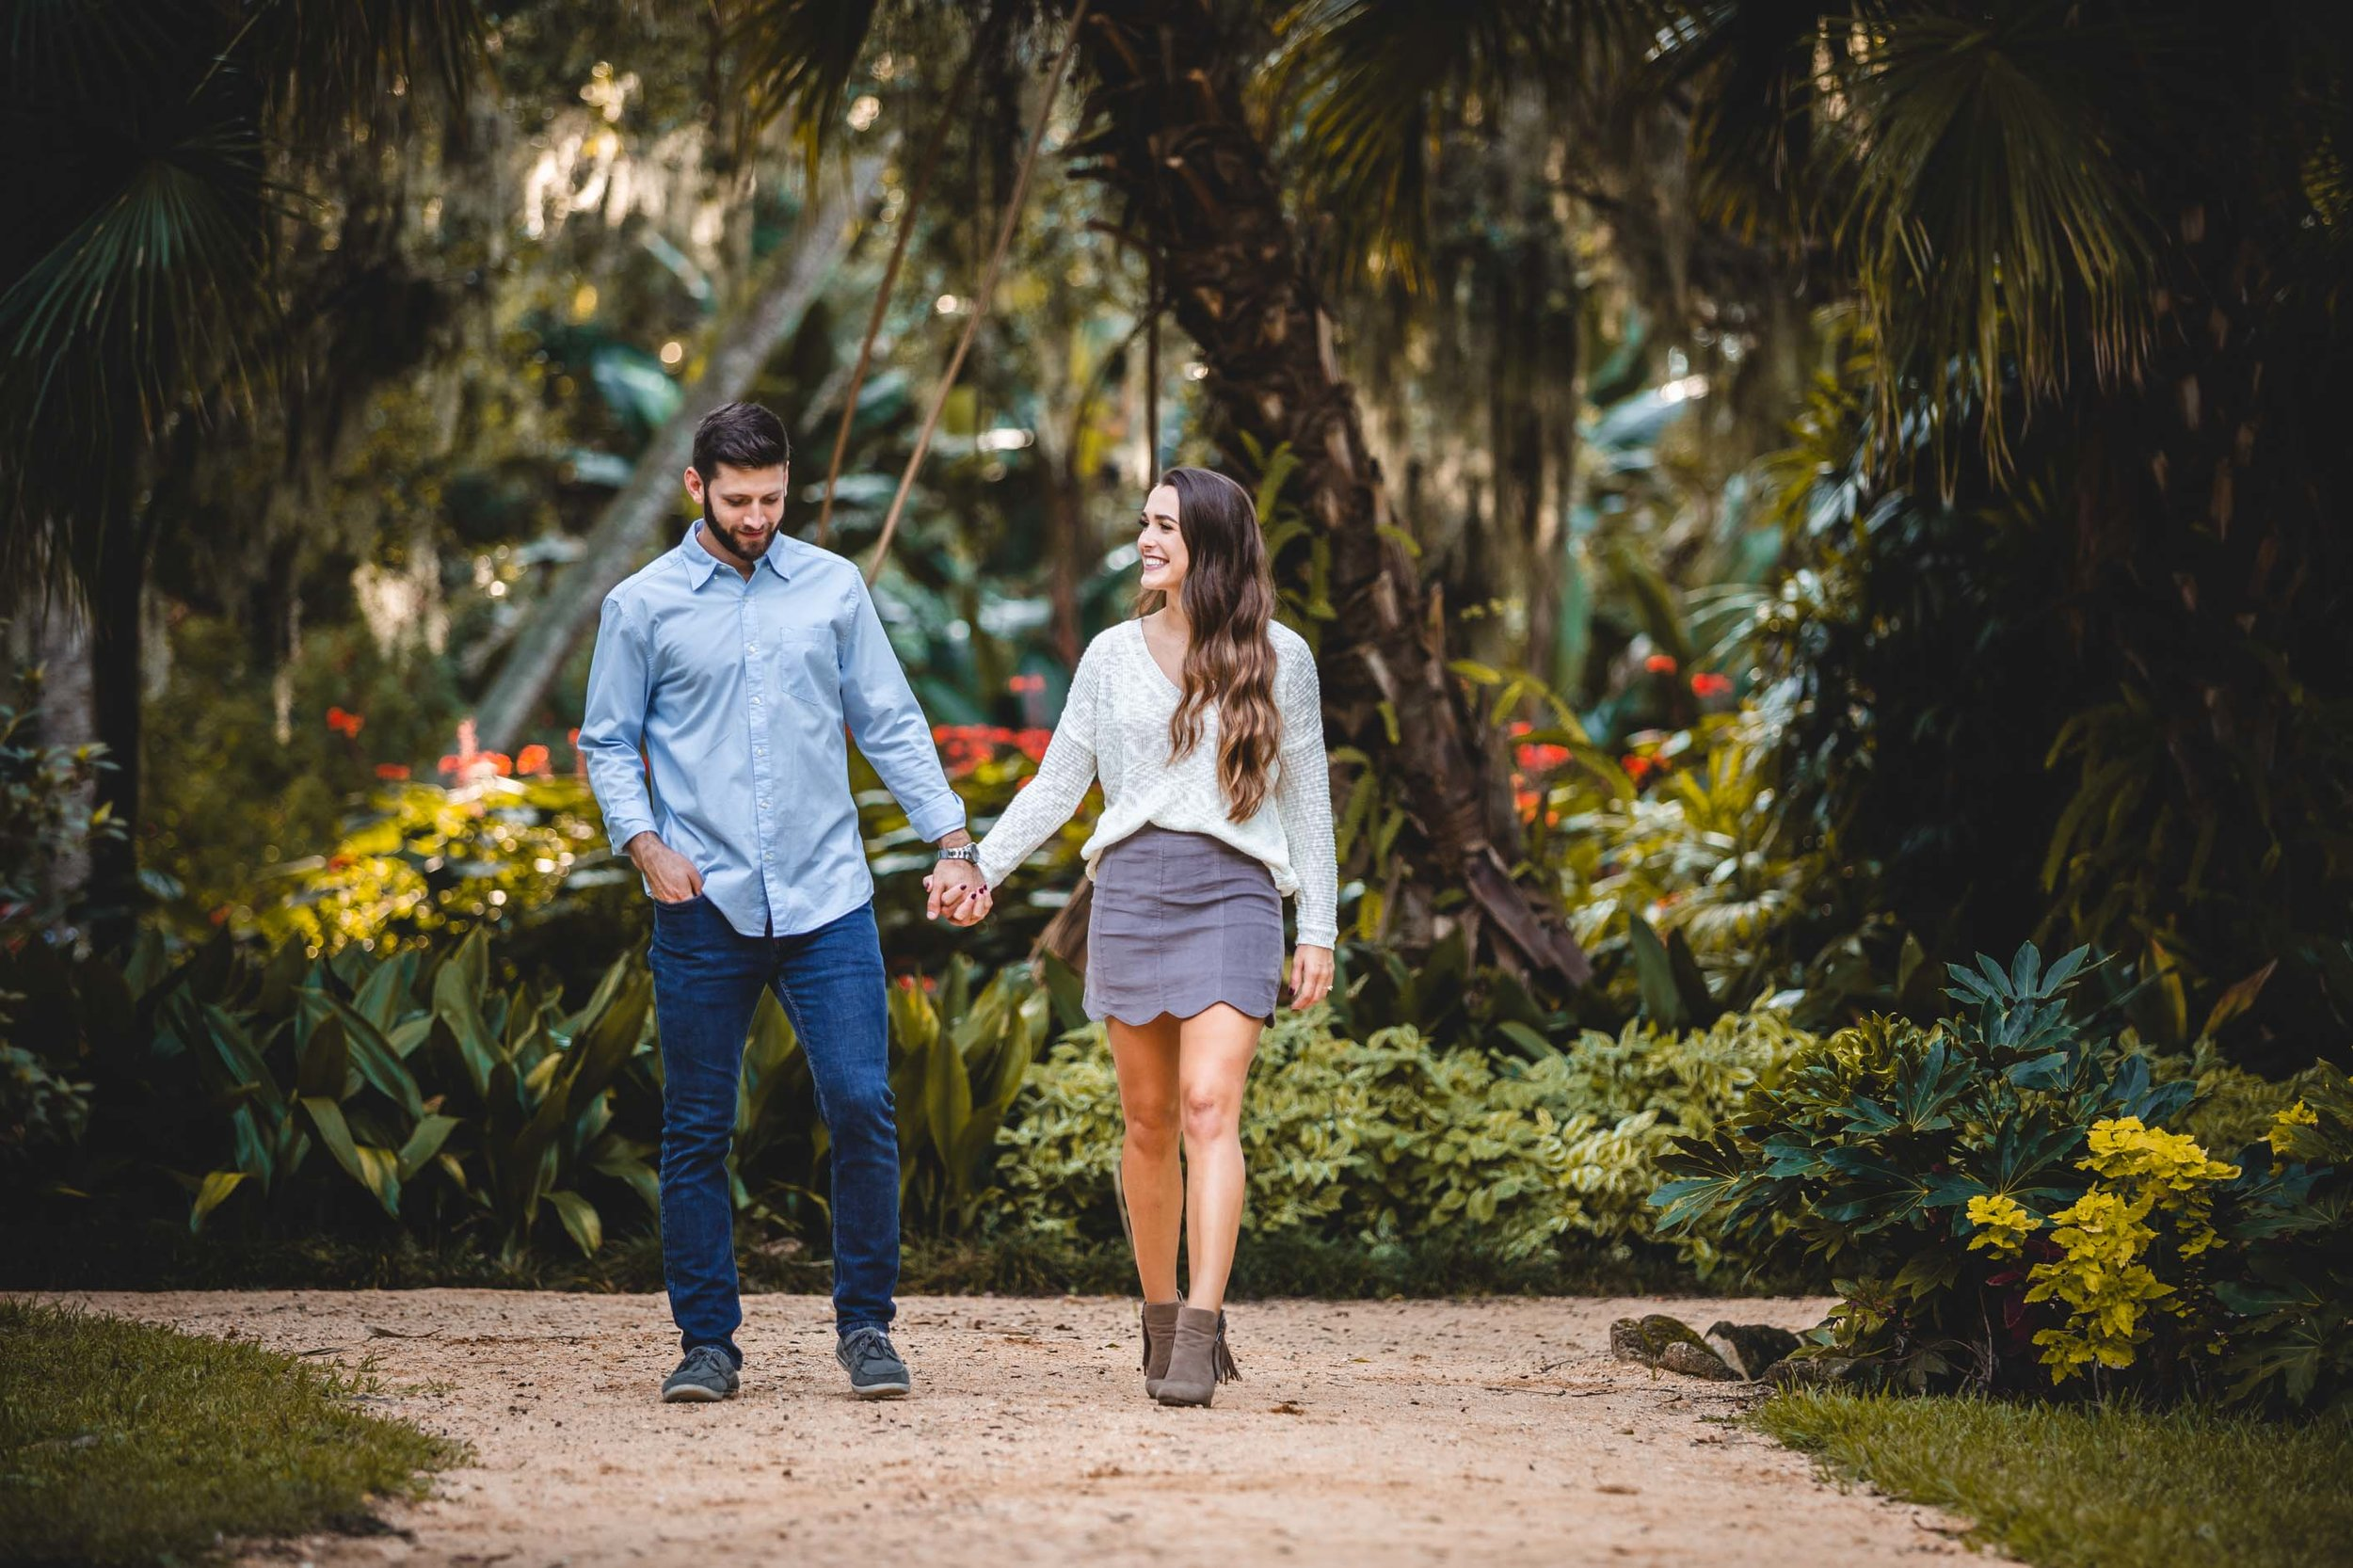 adam-szarmack-jacksonville-wedding-photographer-palm-coast-washing-oaks-garden-state-park-engagement-33.jpg